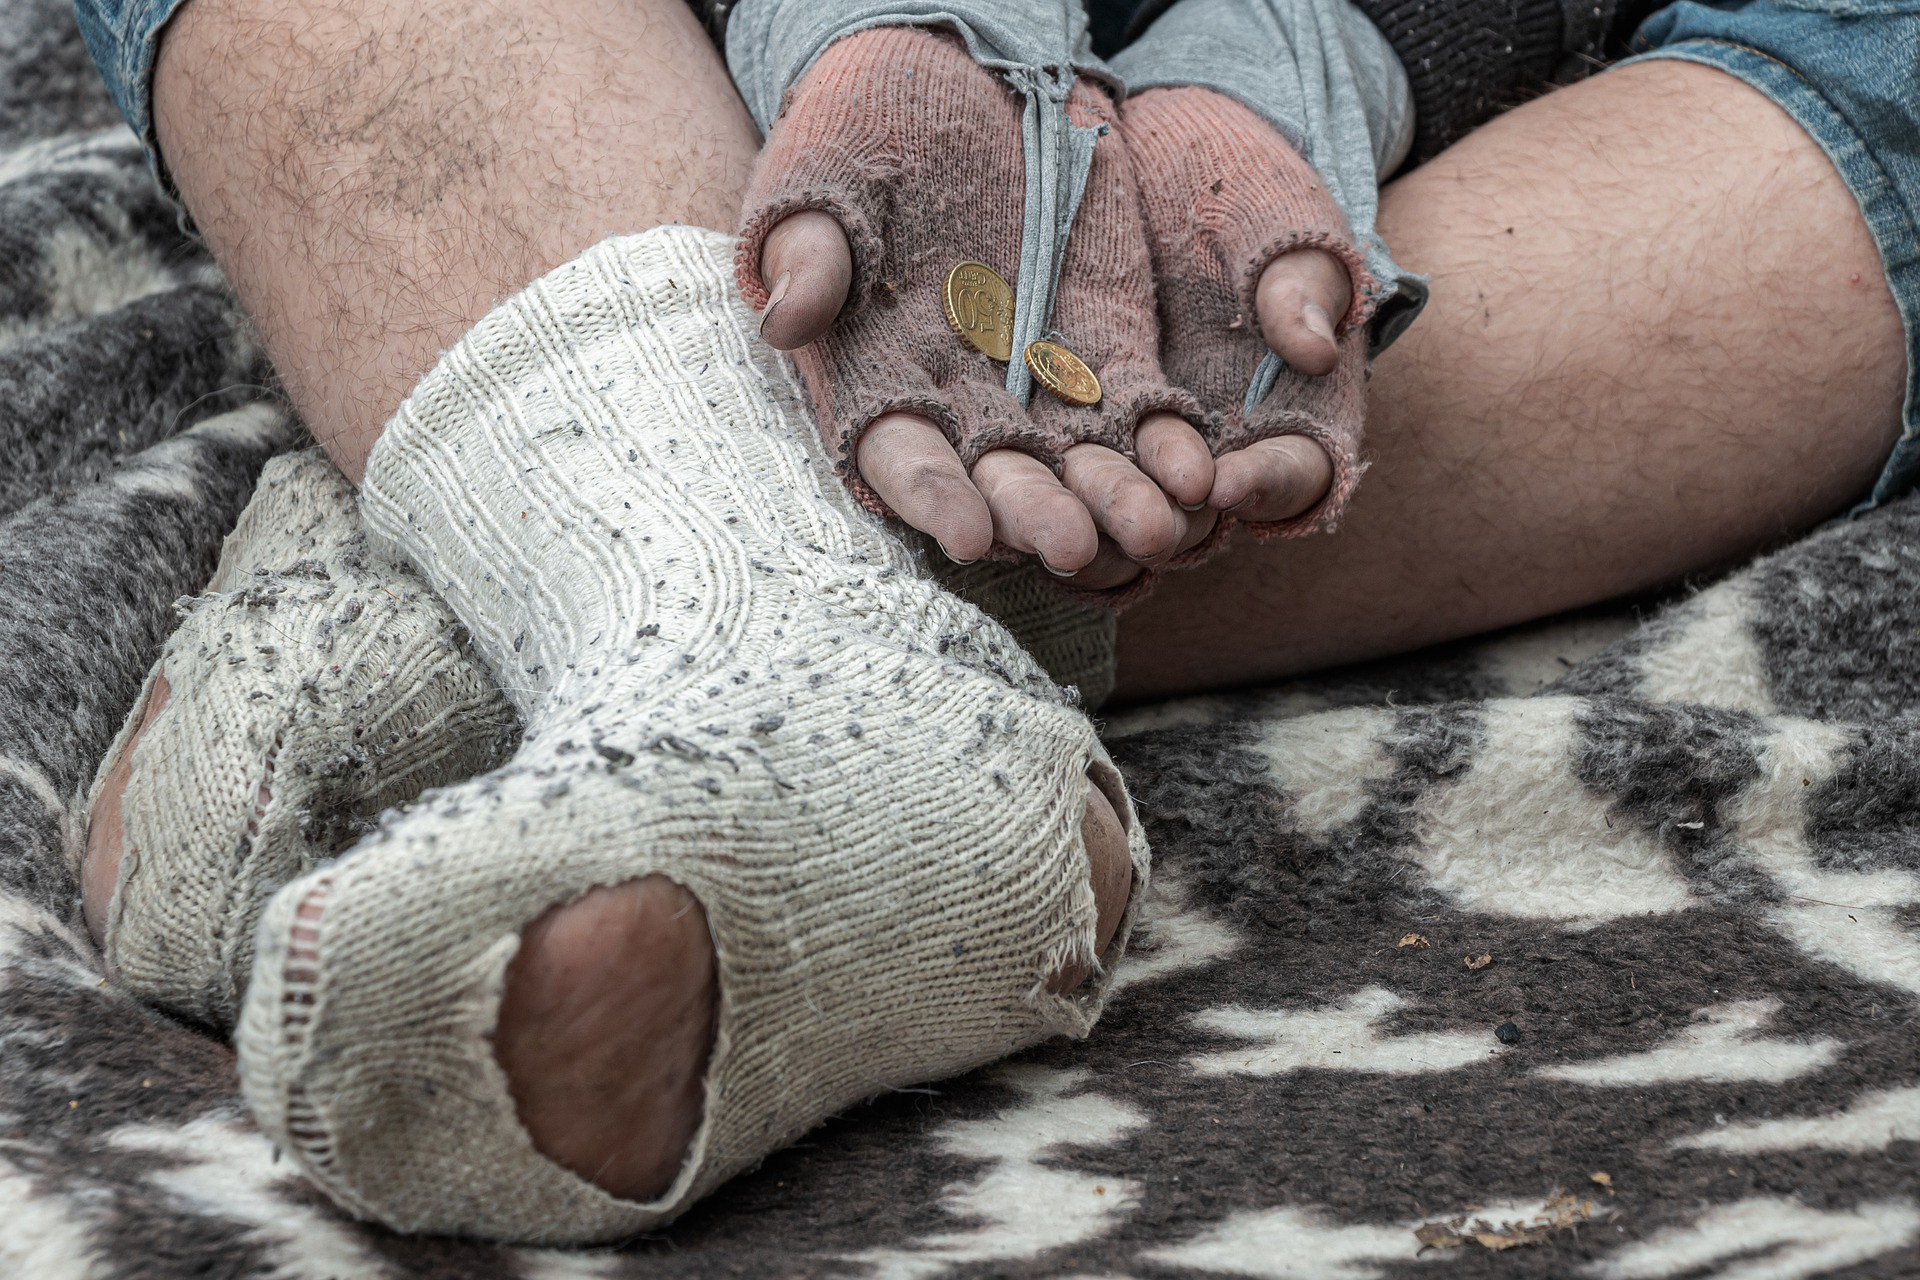 A homeless man with torn socks and gloves begging for money.